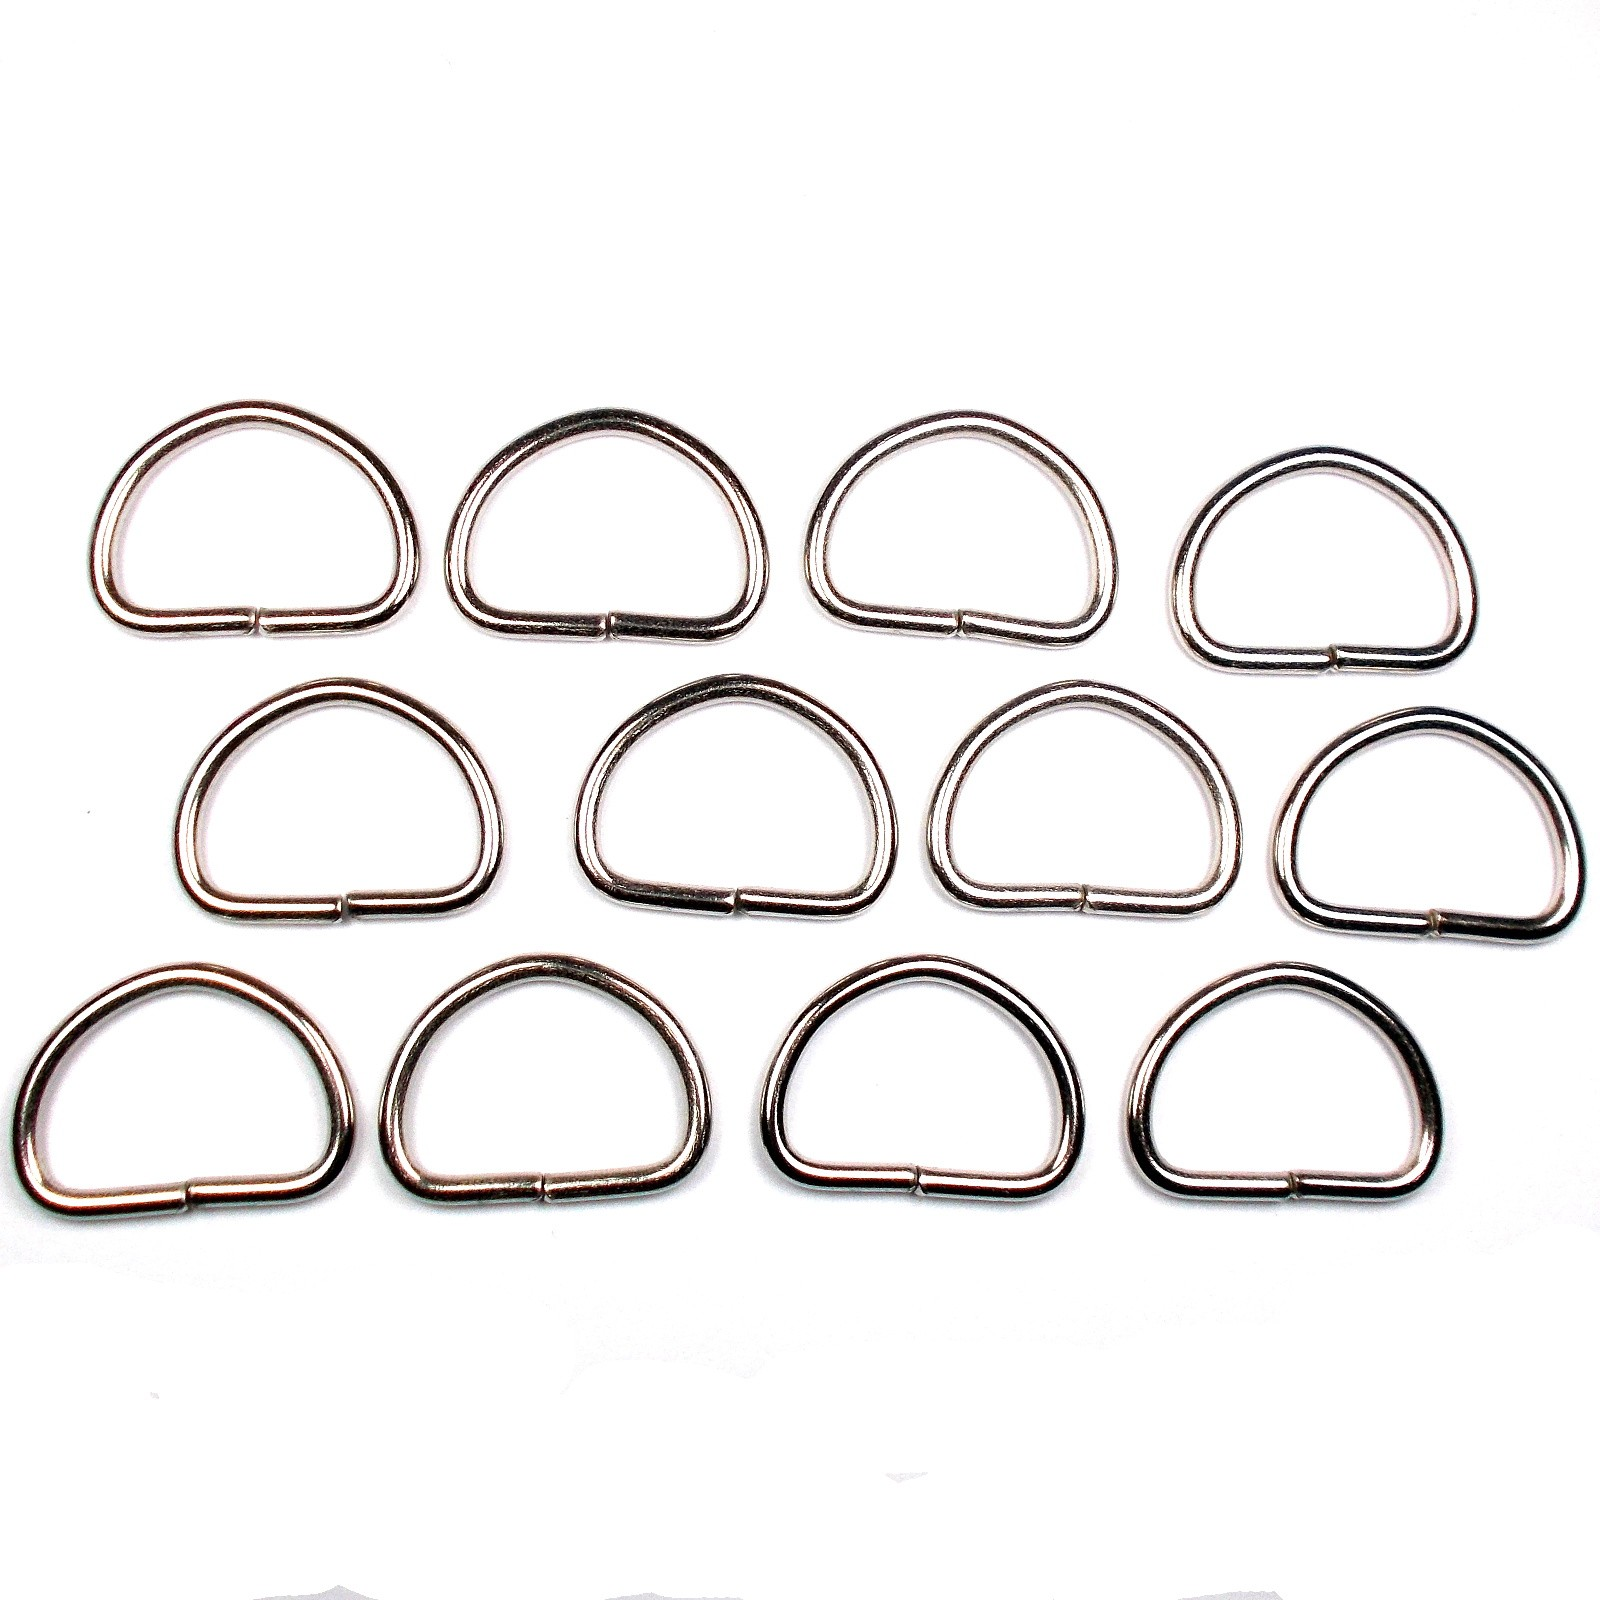 Silver Metal D Rings 47mm Pack of 12